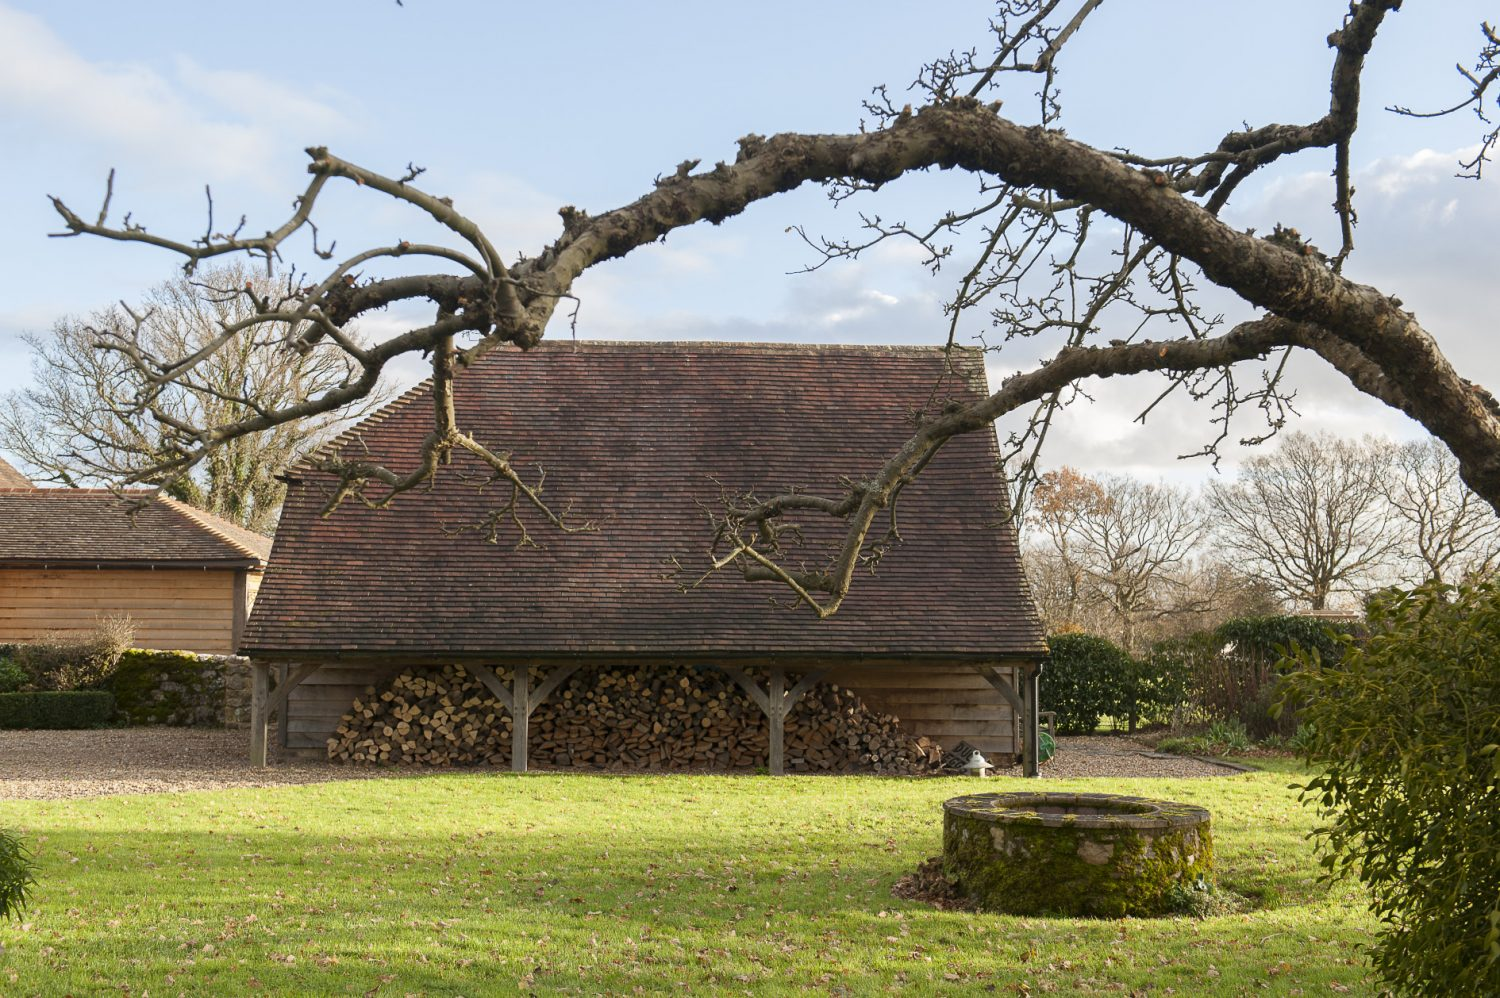 The view from the kitchen window, across the lawn to the oak-framed, cart-shed-style garage